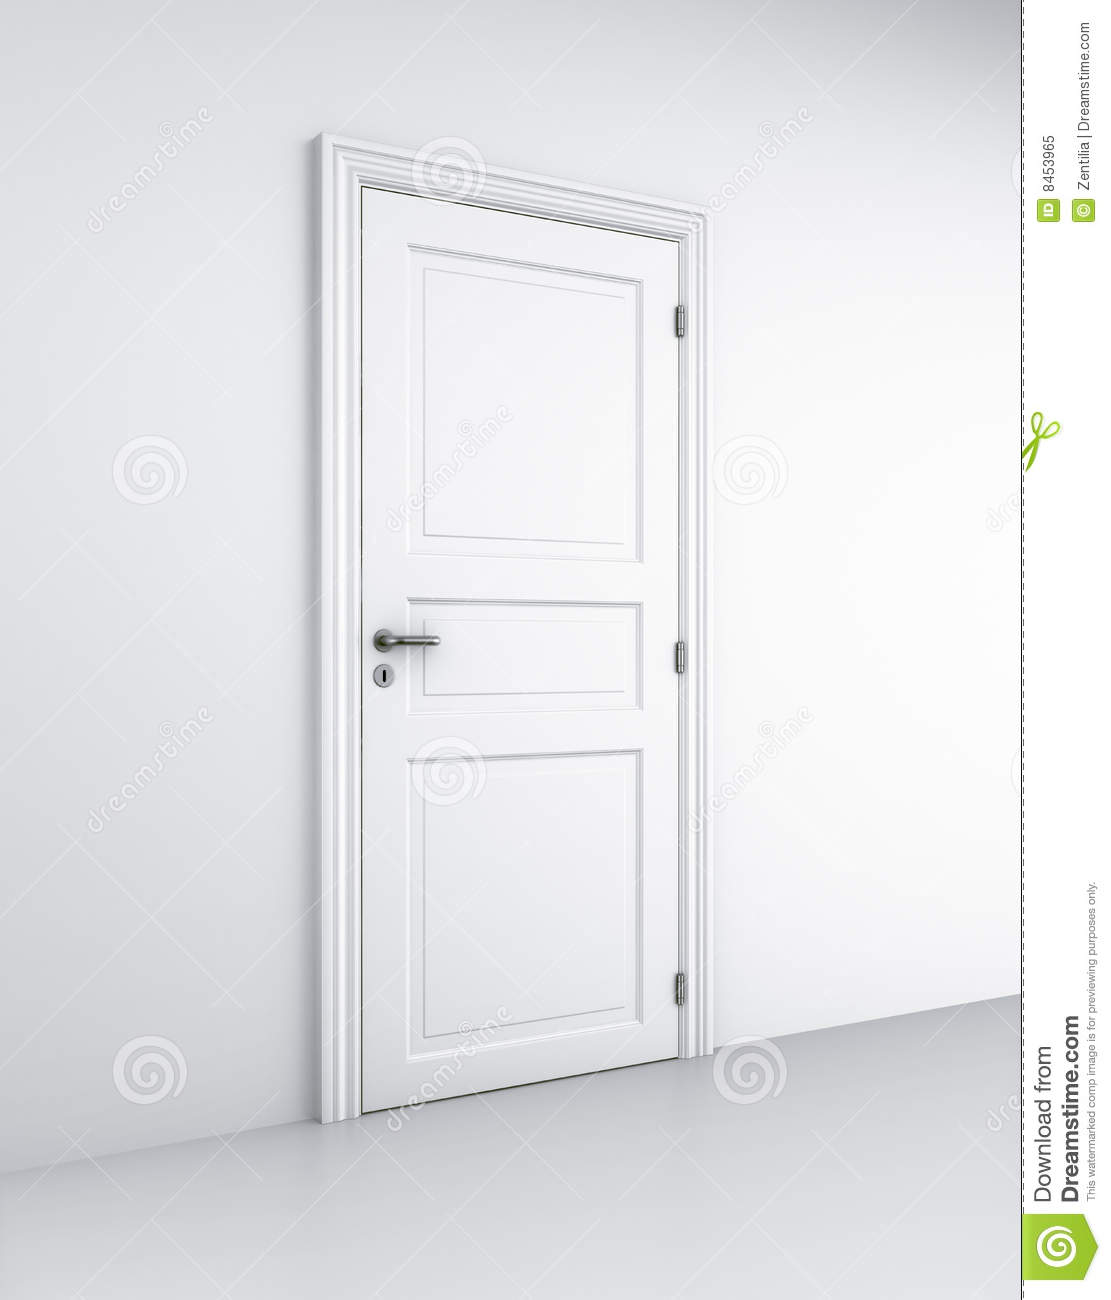 Door in white room & Door in white room stock illustration. Illustration of closed ...